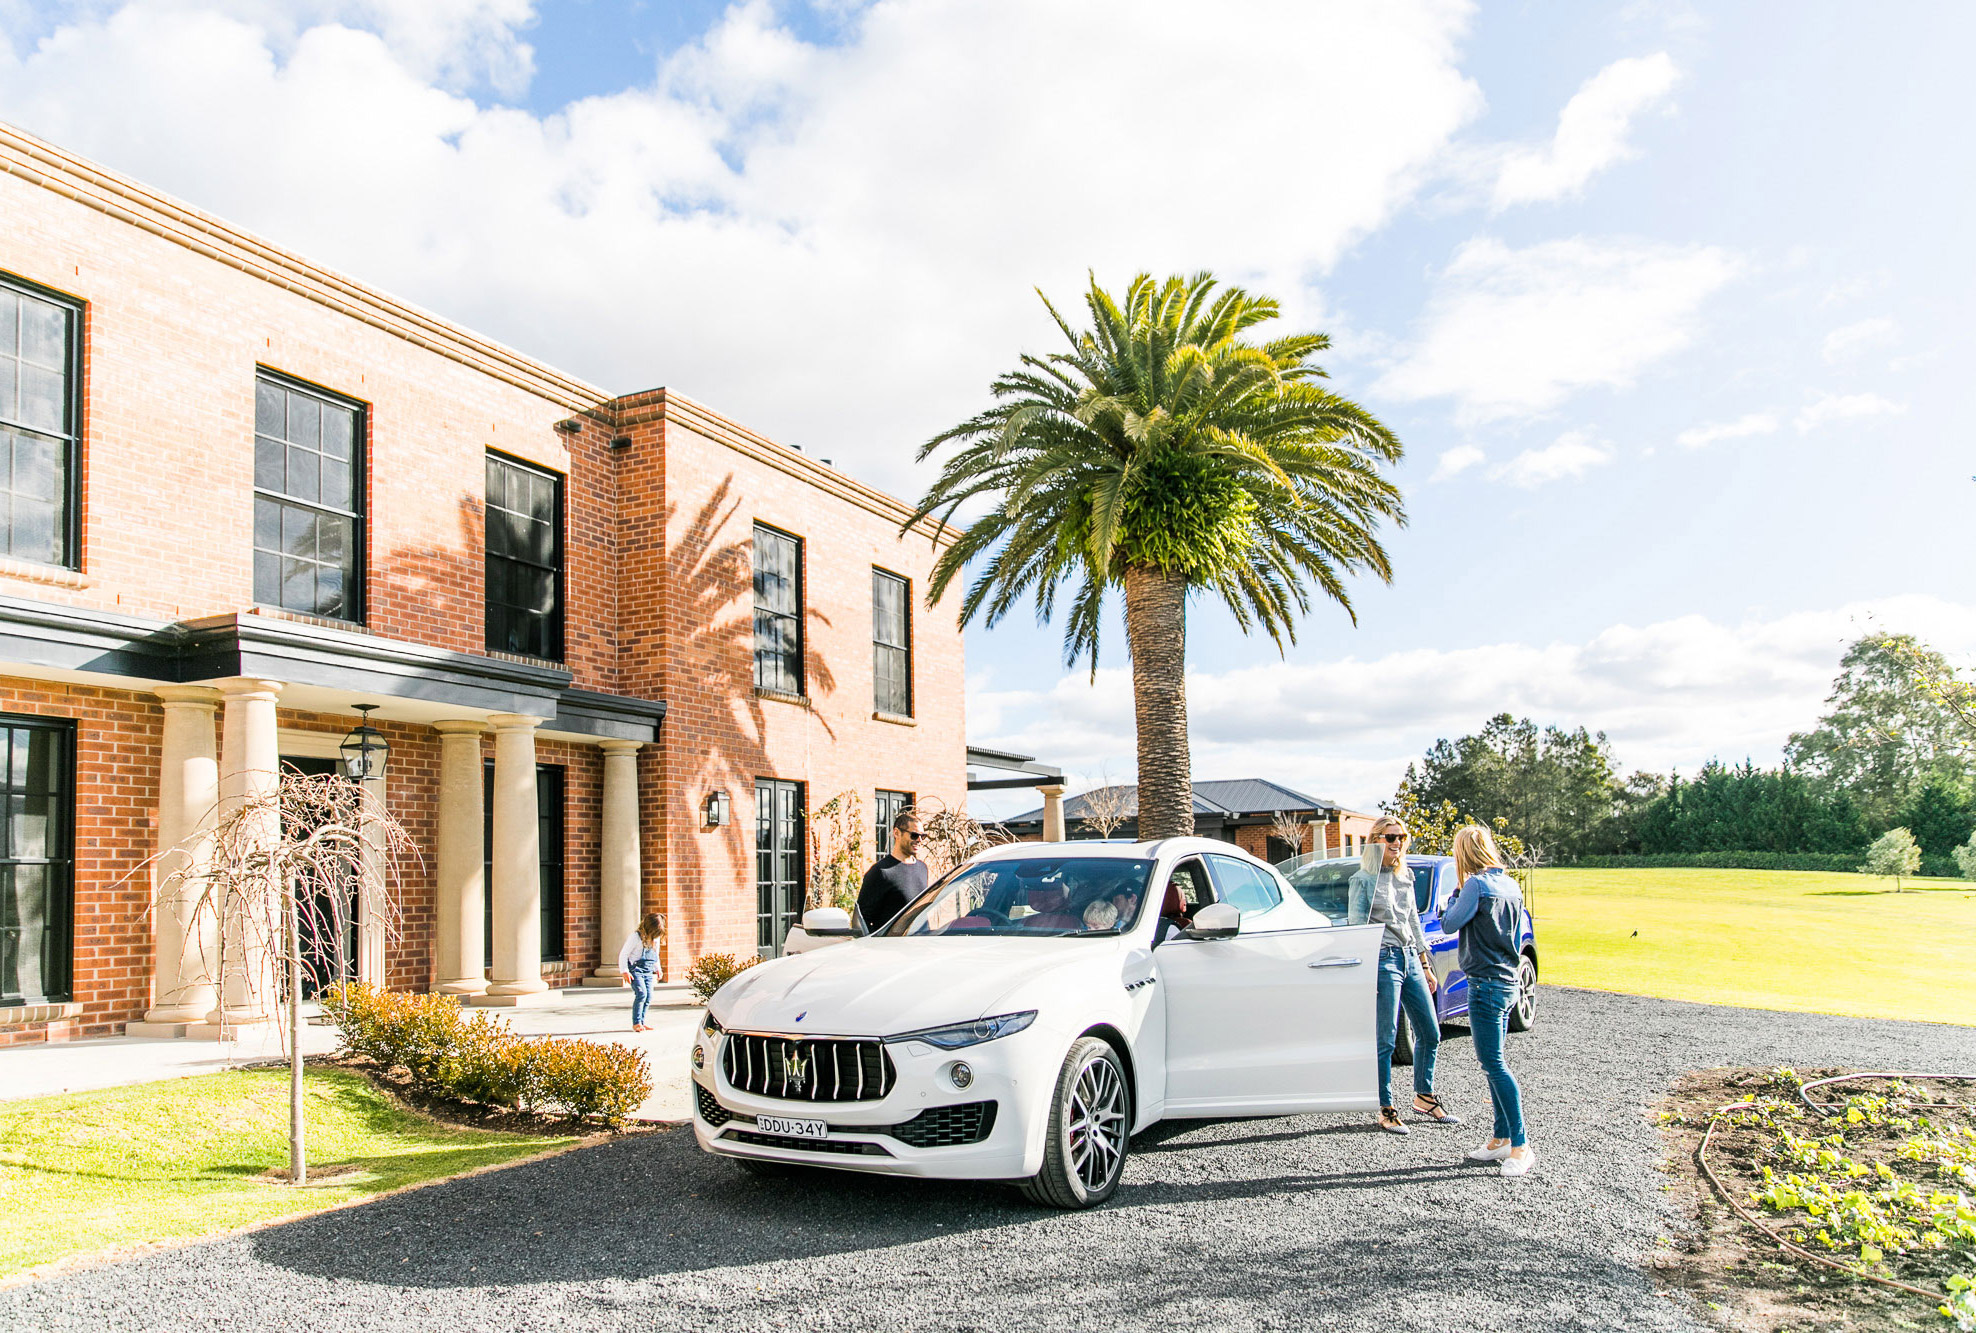 Georgie Abay Test Drives The Most Luxurious New SUV On The Market